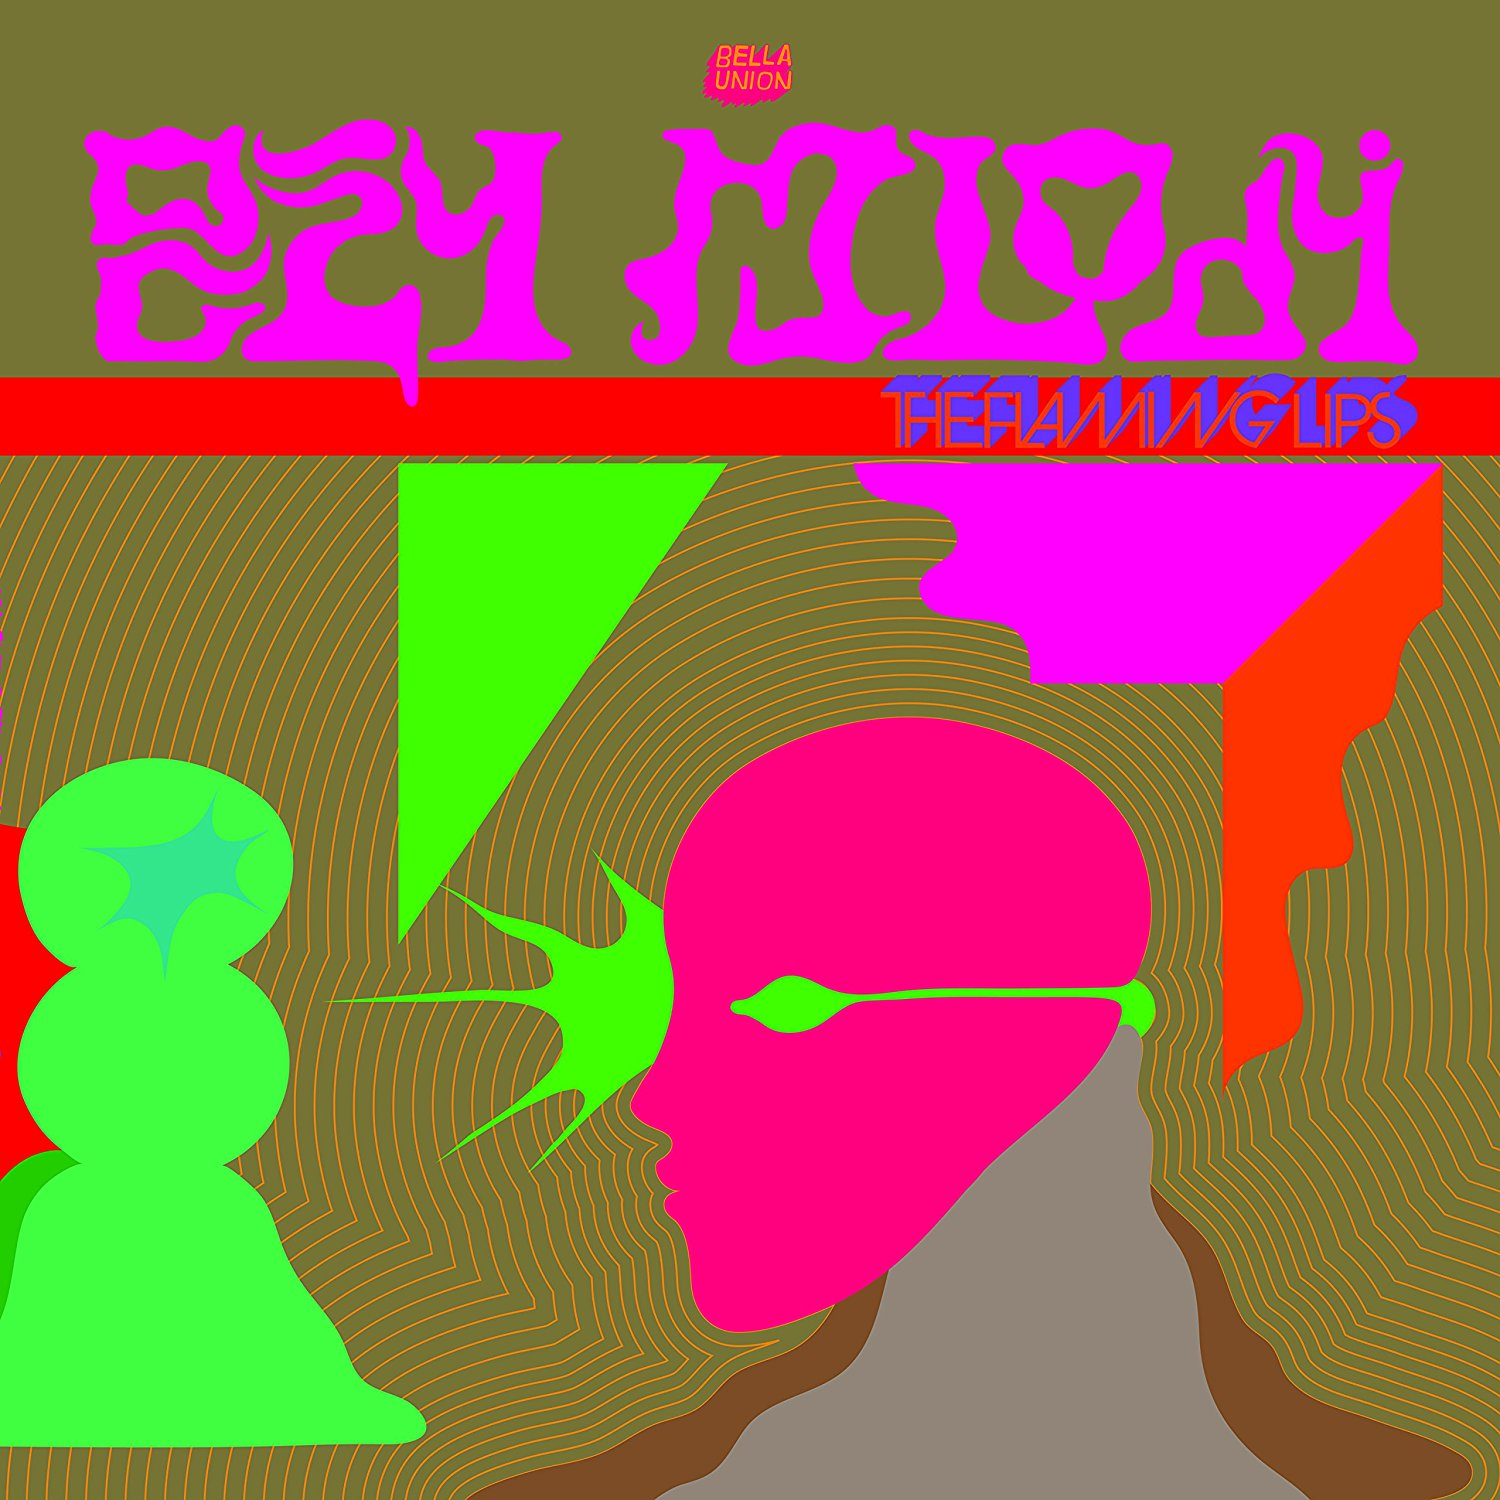 Flaming Lips - Oczy Mlody.jpg - 295.02 KB